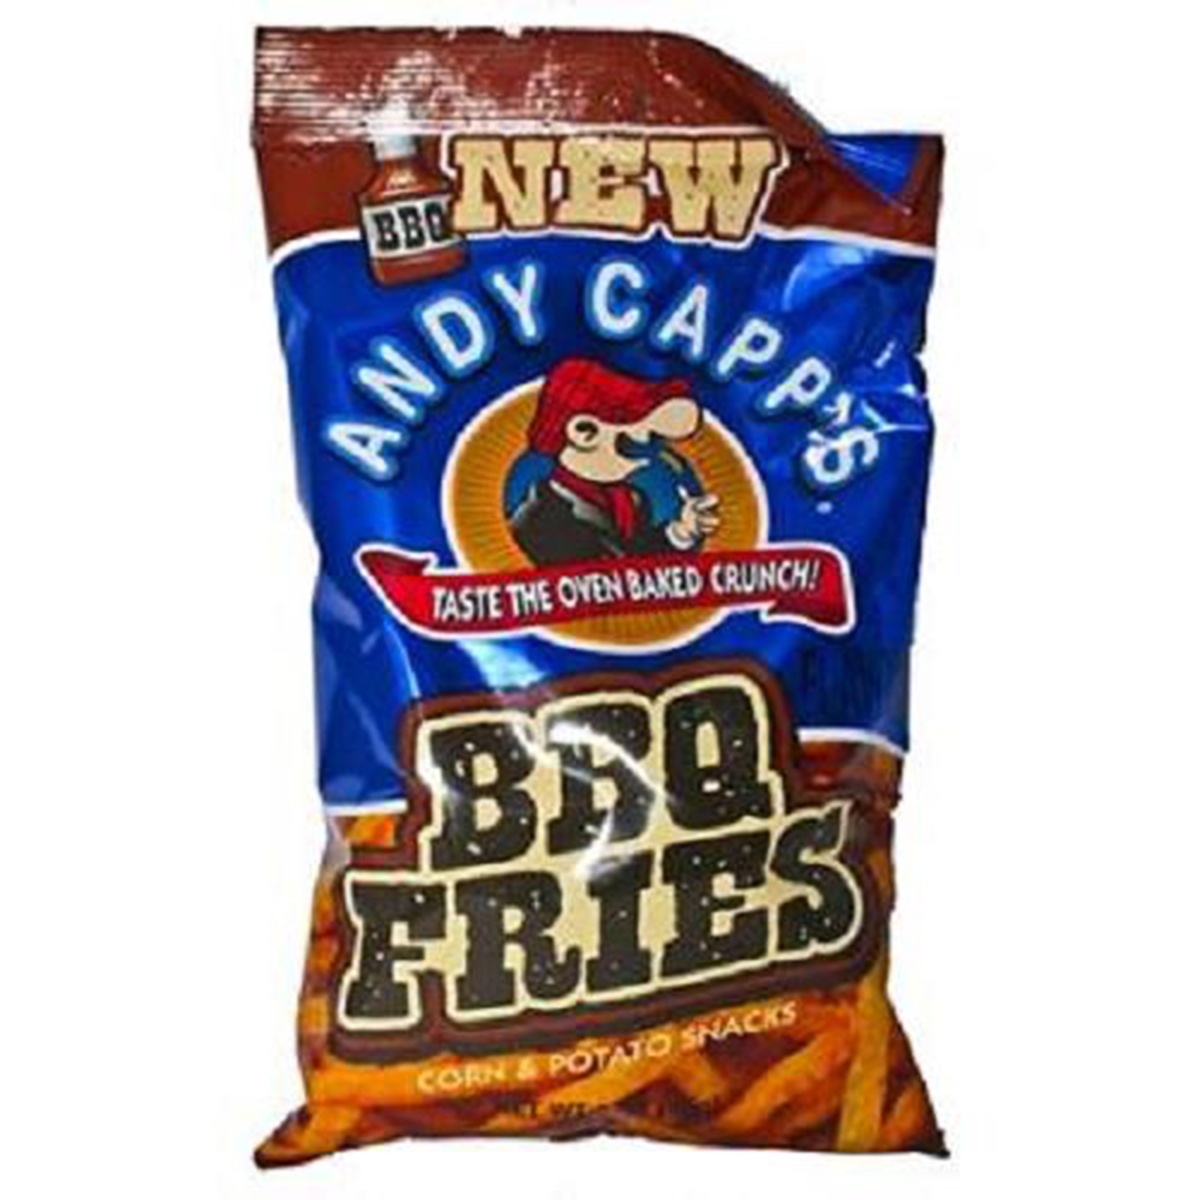 Product Of Andy Capp, Bbq Fries, Count 12 (3 oz) - Snacks / Grab Varieties & Flavors